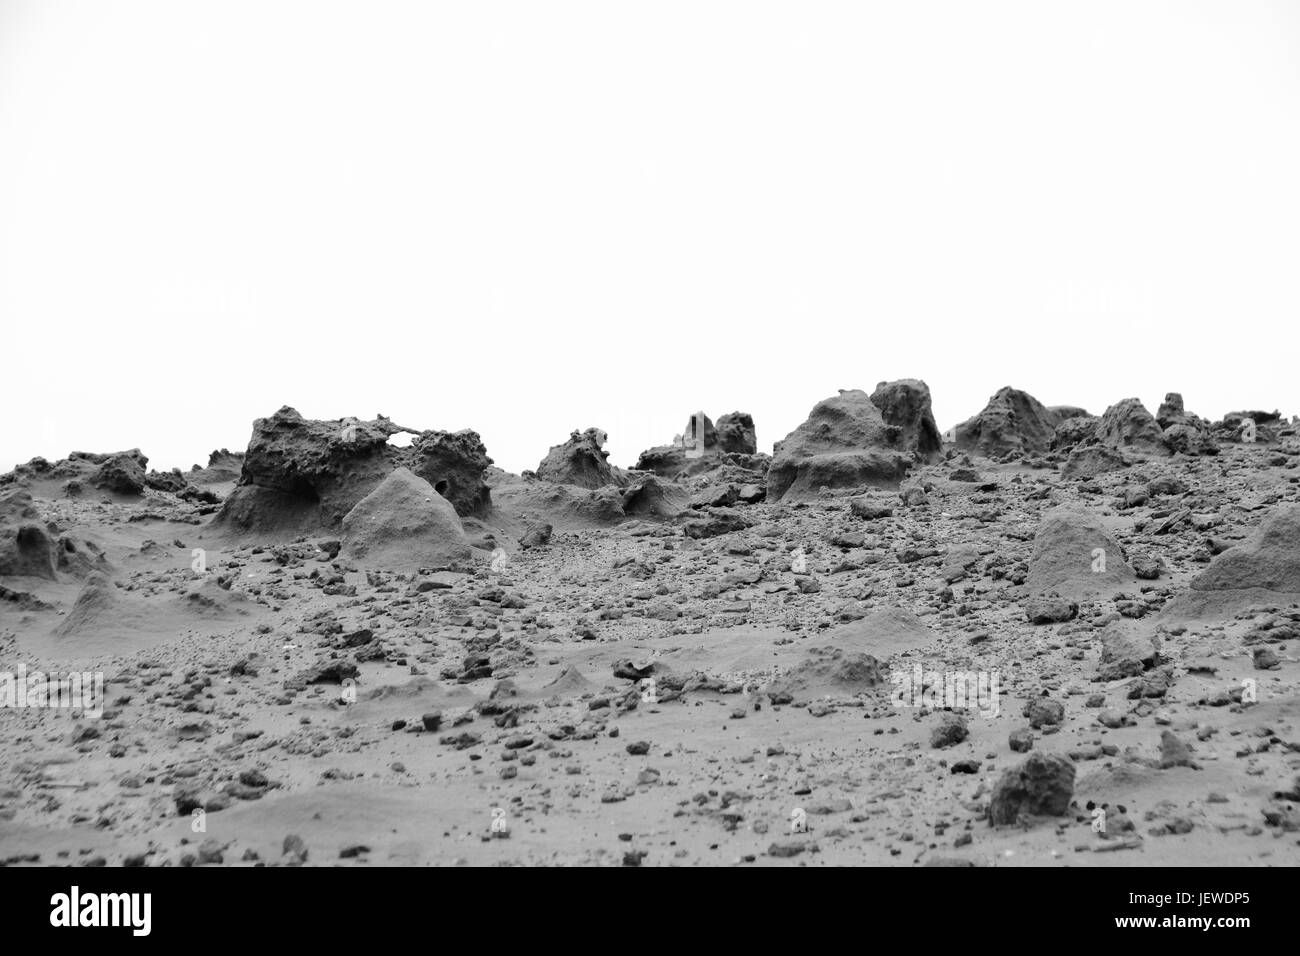 Black and white image of sand sculptures in the arid environment of Ponta da Canaveira, Porto Santo - Stock Image